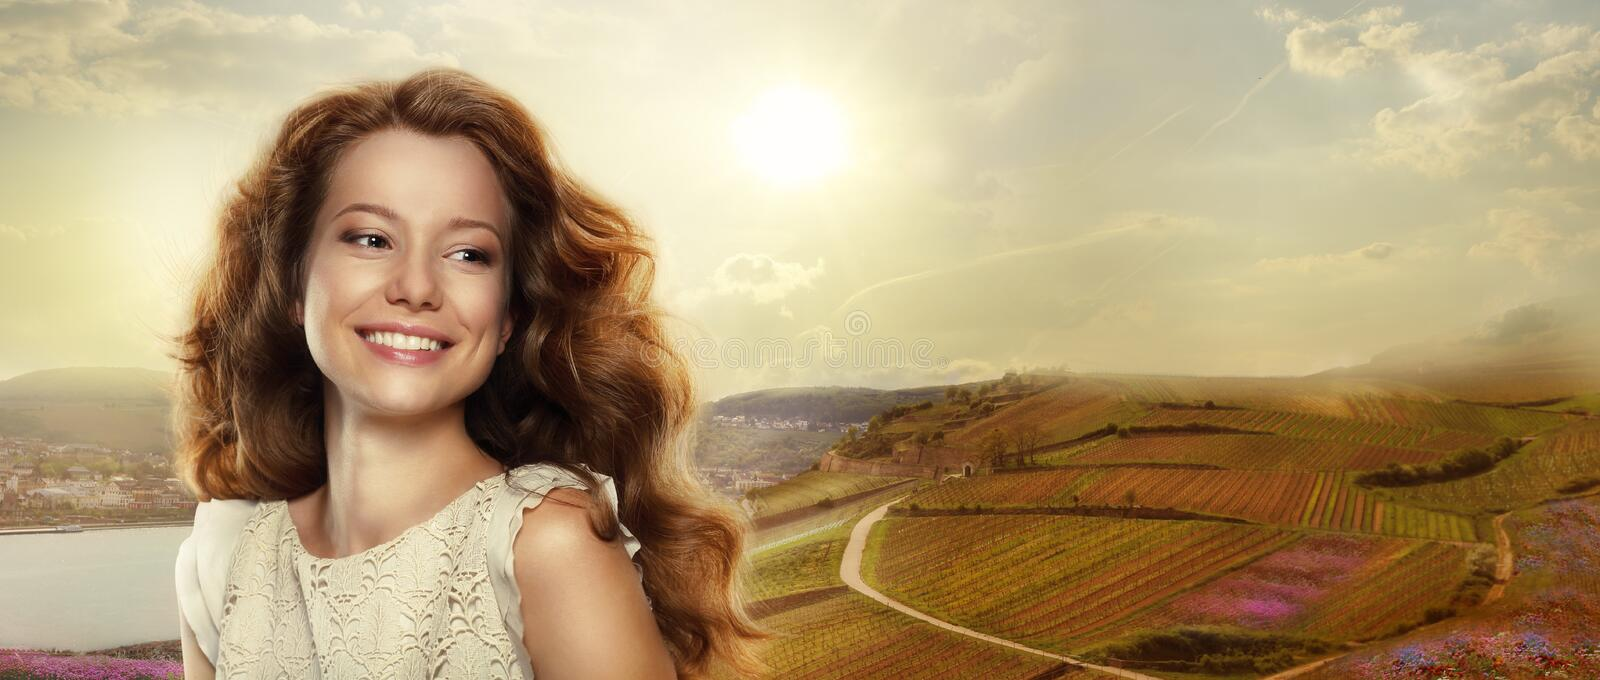 Young Happy Woman with Winning Smile Outdoors. Happy Woman with Winning Smile Outdoors royalty free stock photography